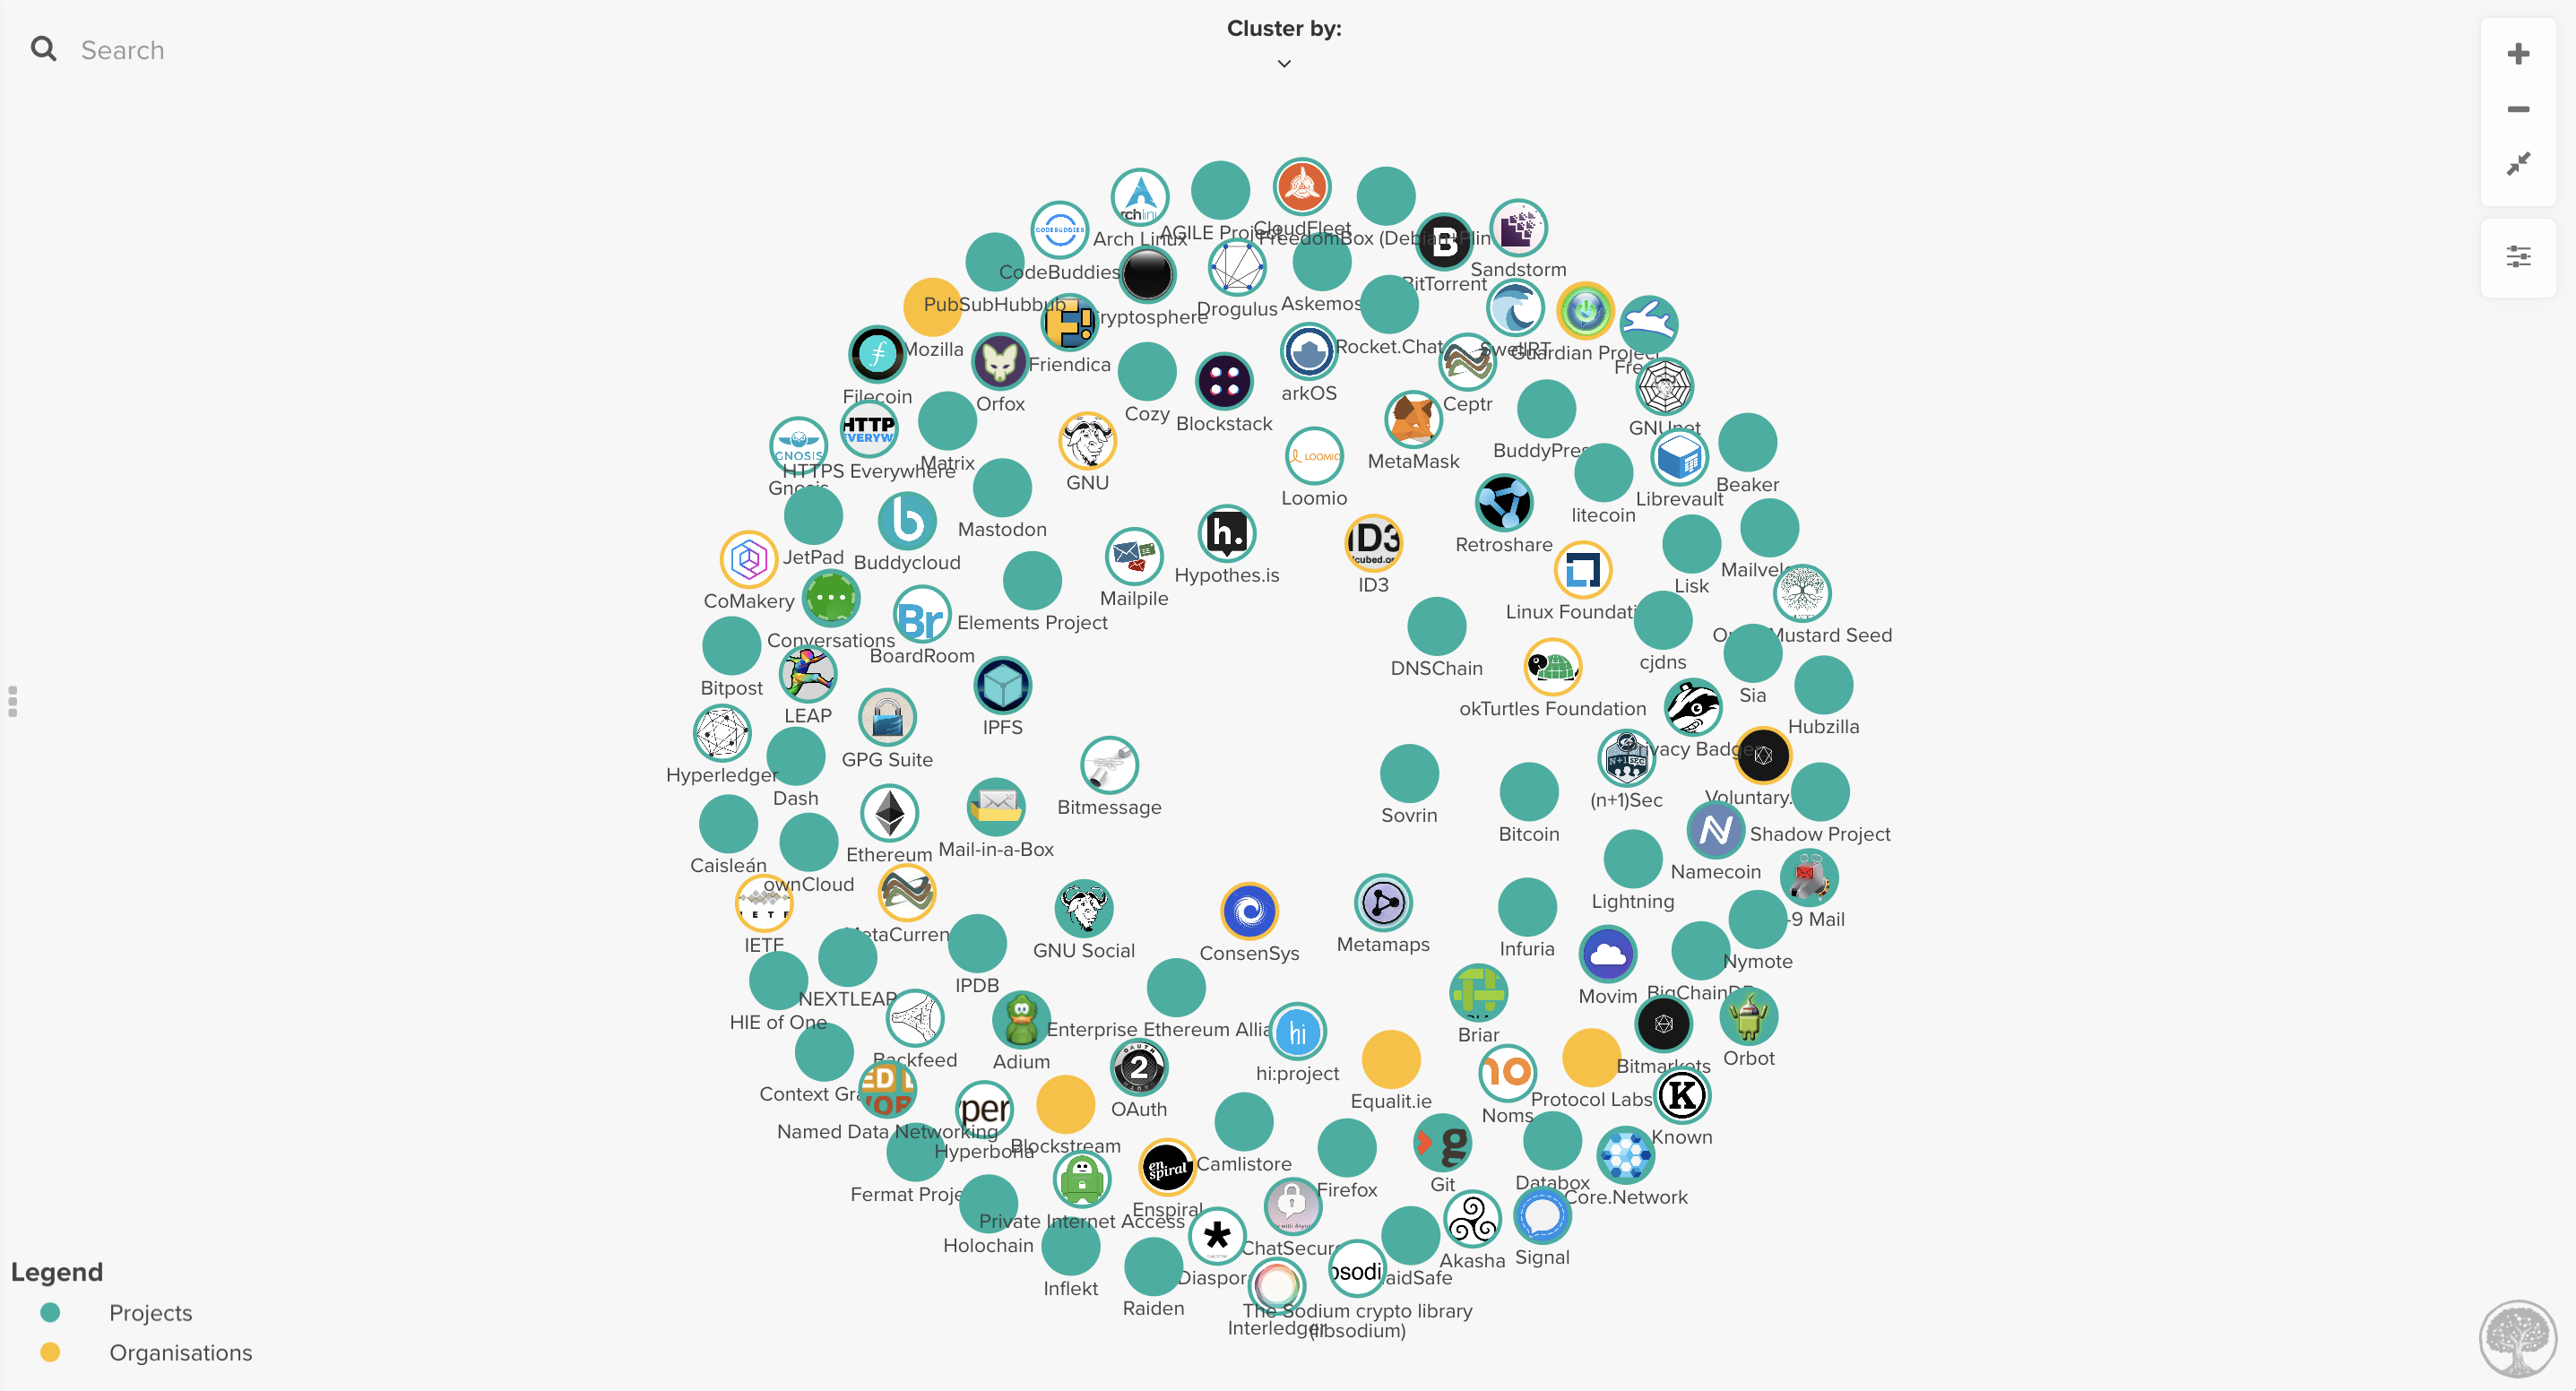 Ceptr mapmakers: the digital life collective - in too deep